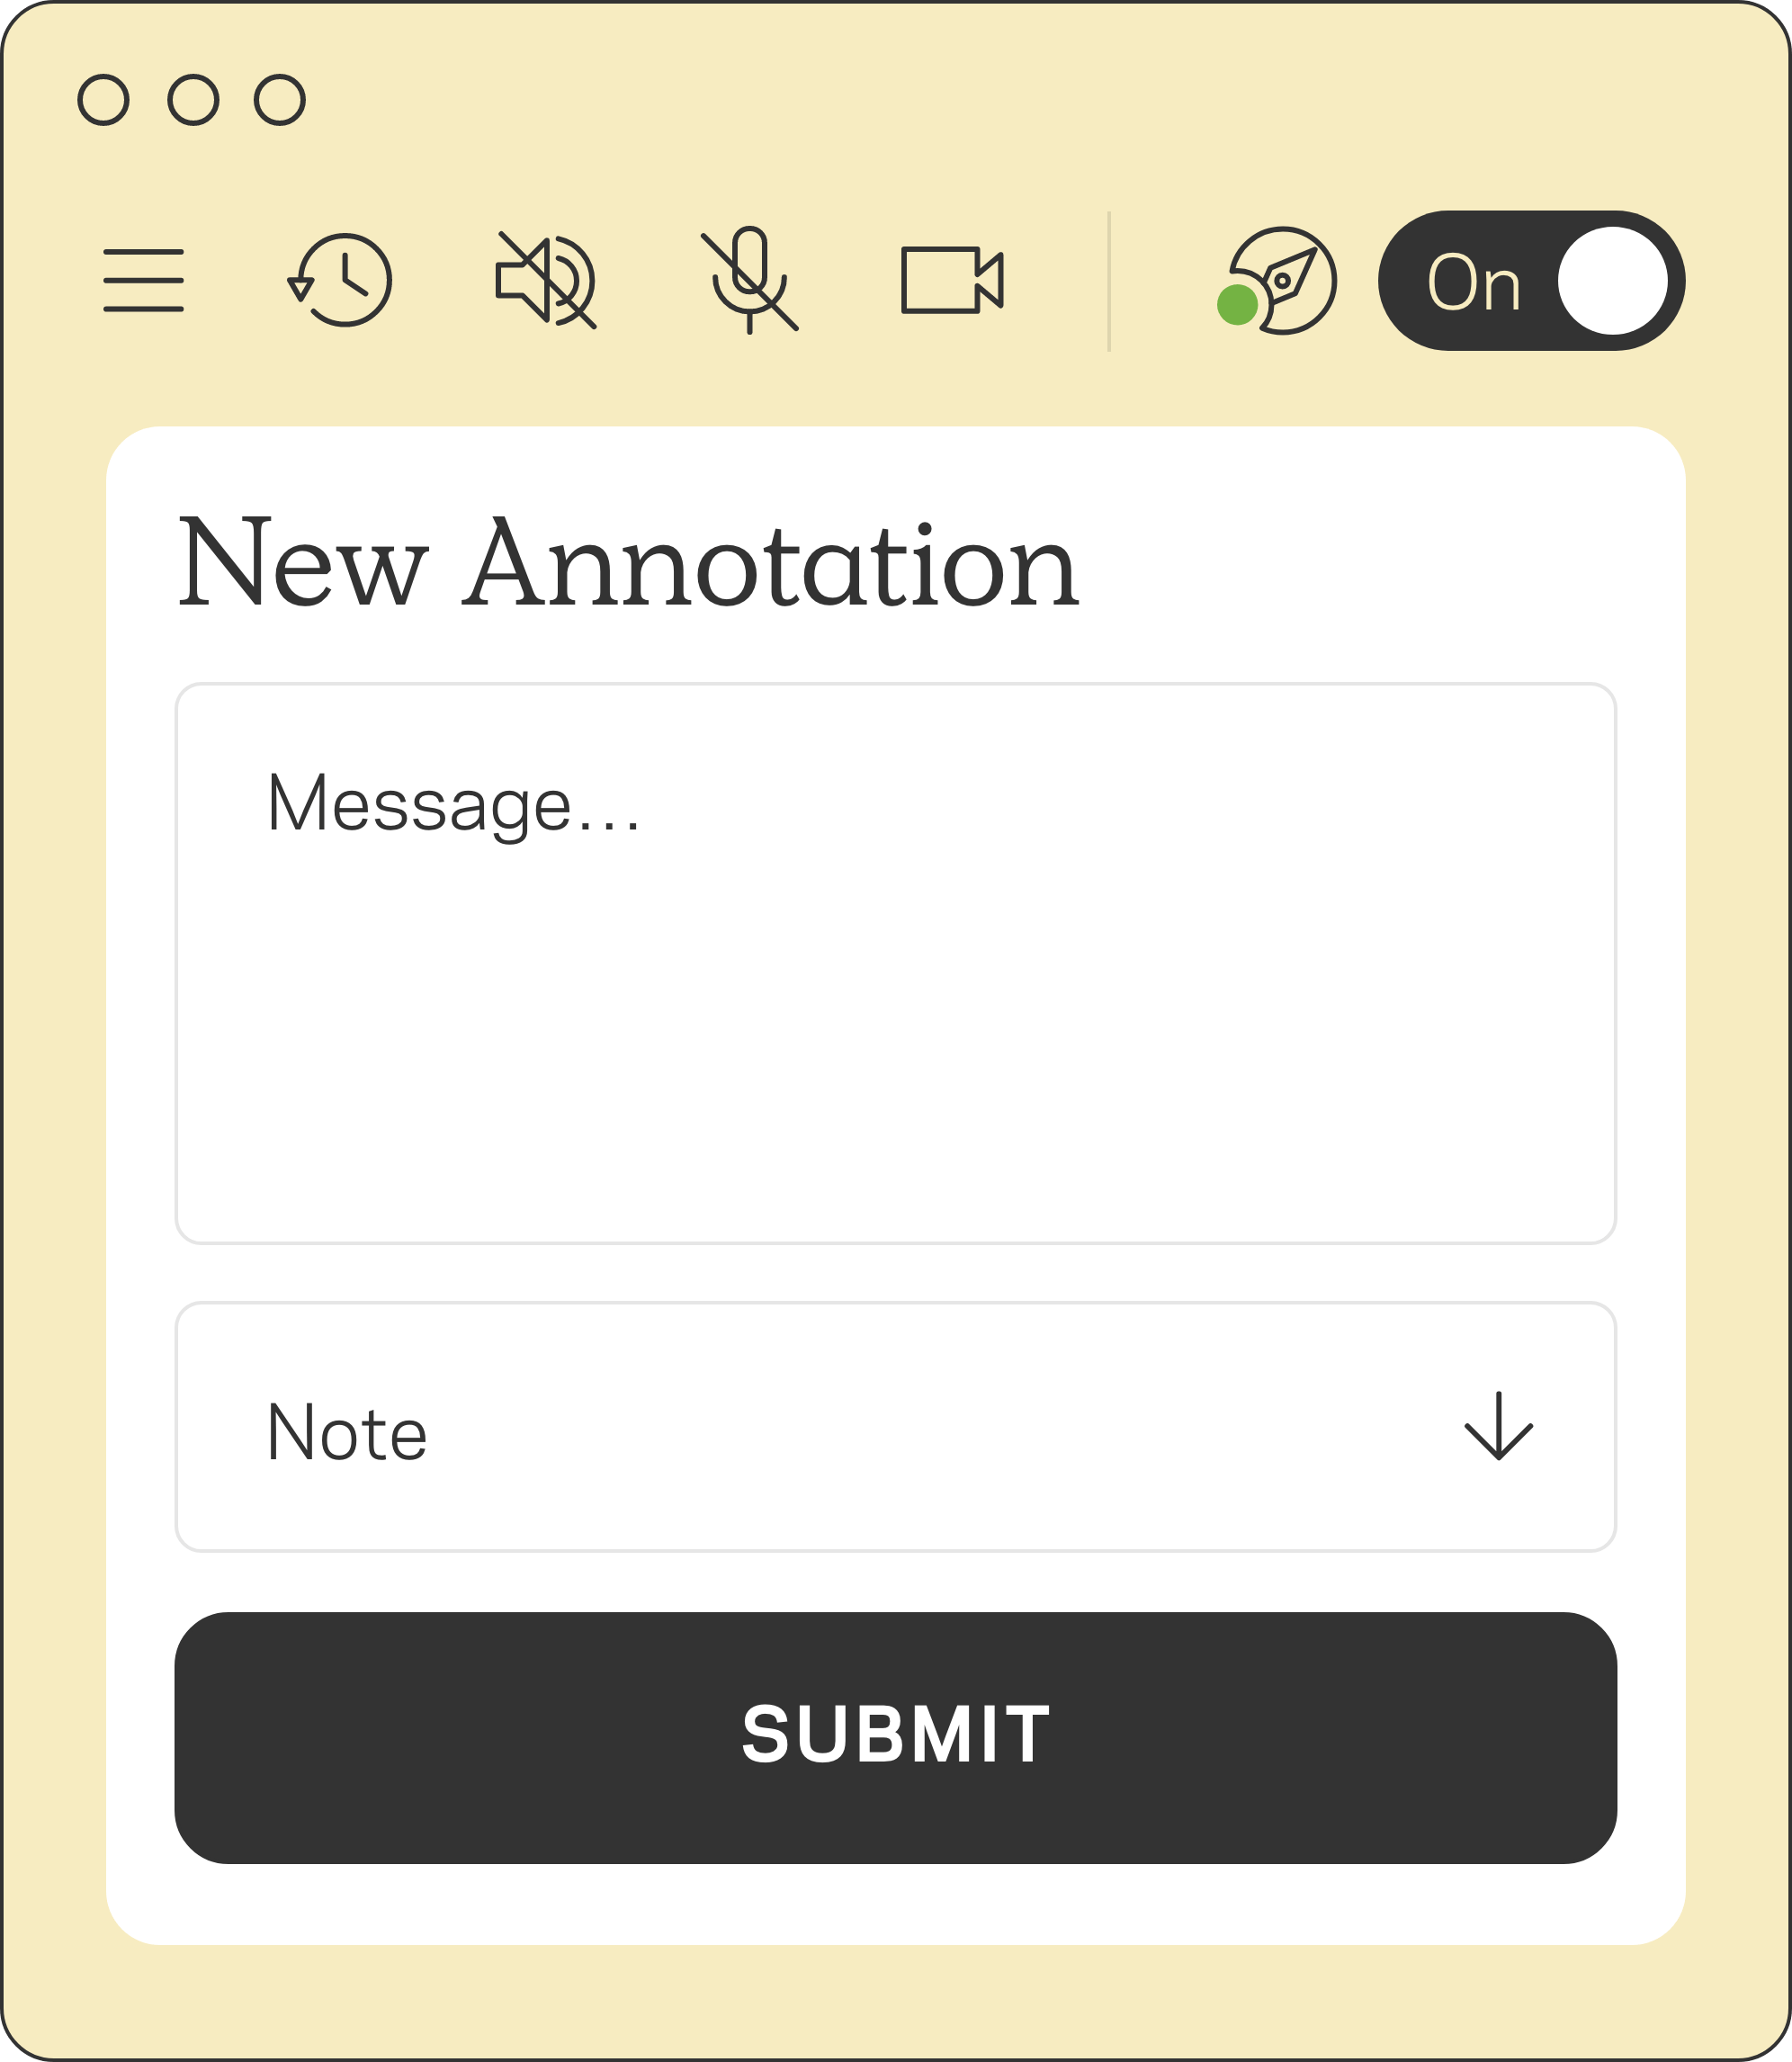 Annotation feature shows how to add and submit a message